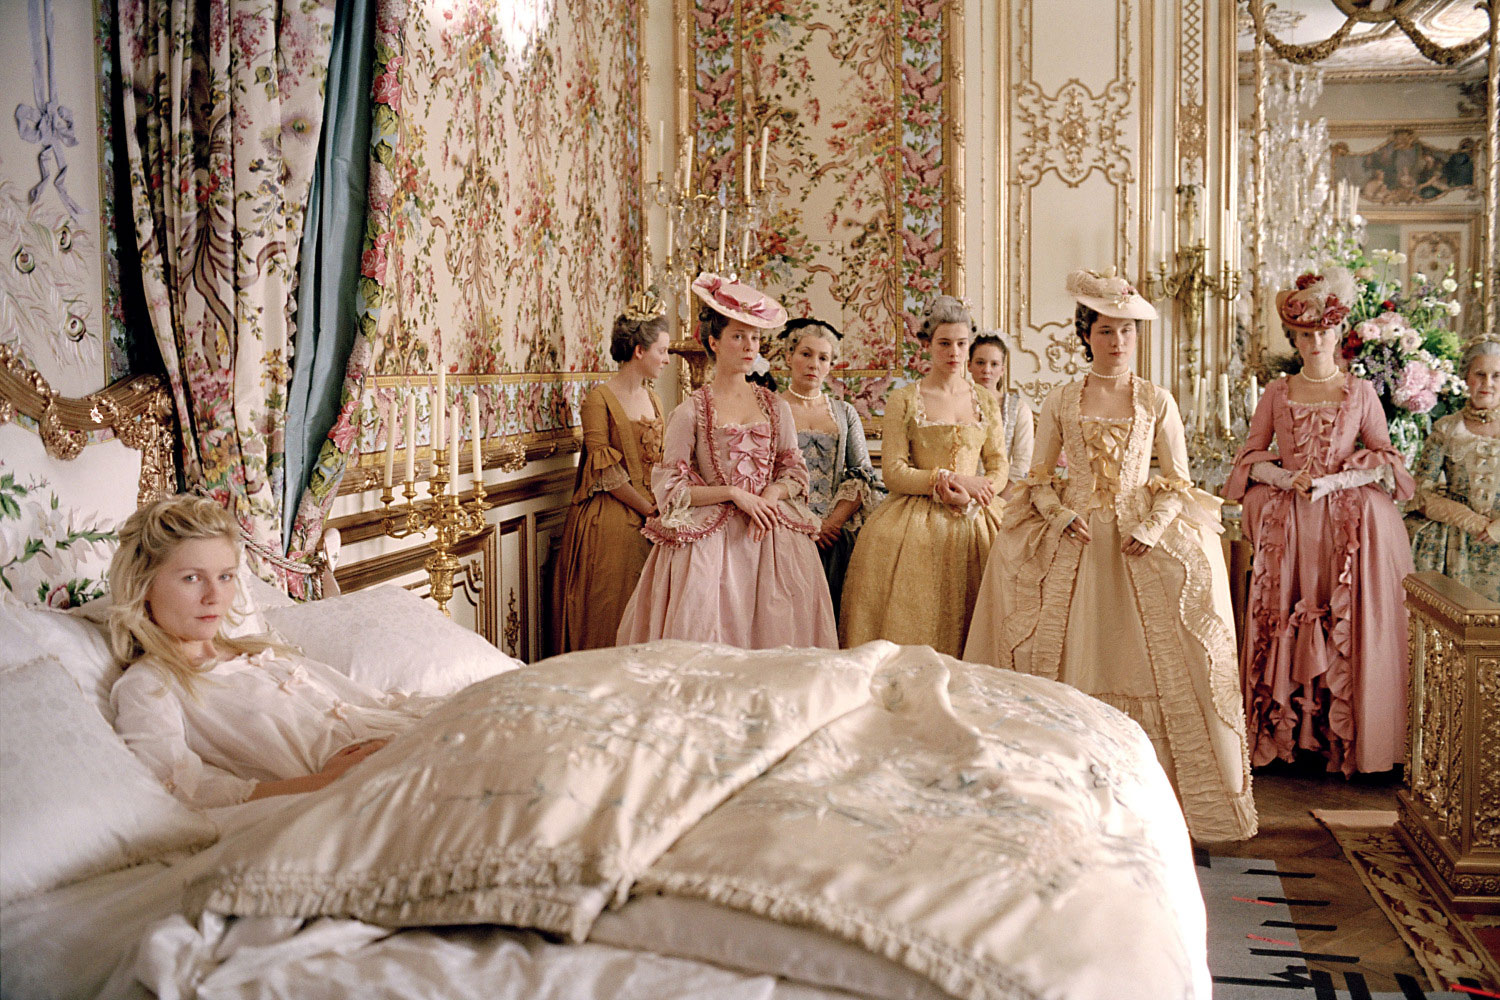 44 Grandiose Facts About Marie Antoinette - Page 3 of 6